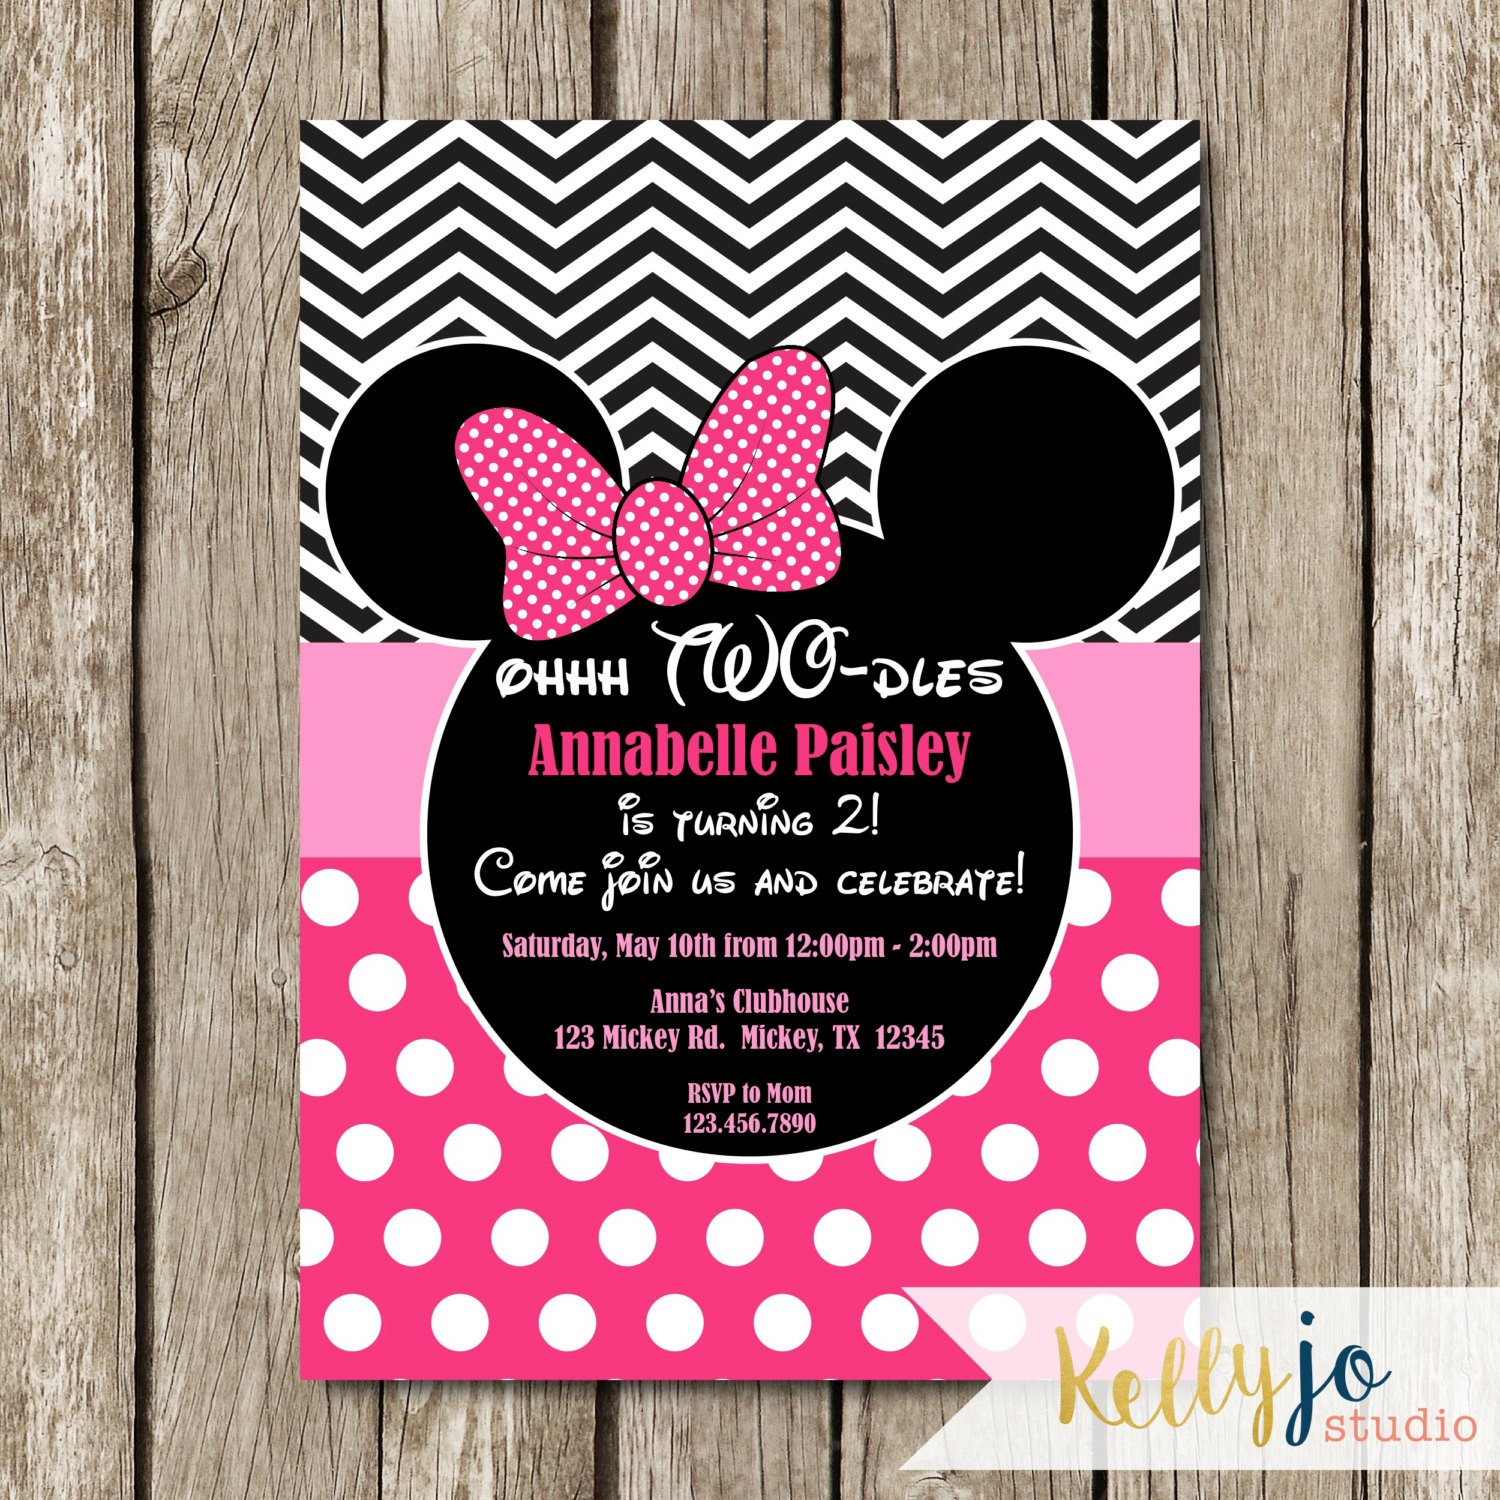 Minnie Mouse Party Invitations Pink Minnie Mouse Oh Two Dles Birthday Invites Pink Minnie